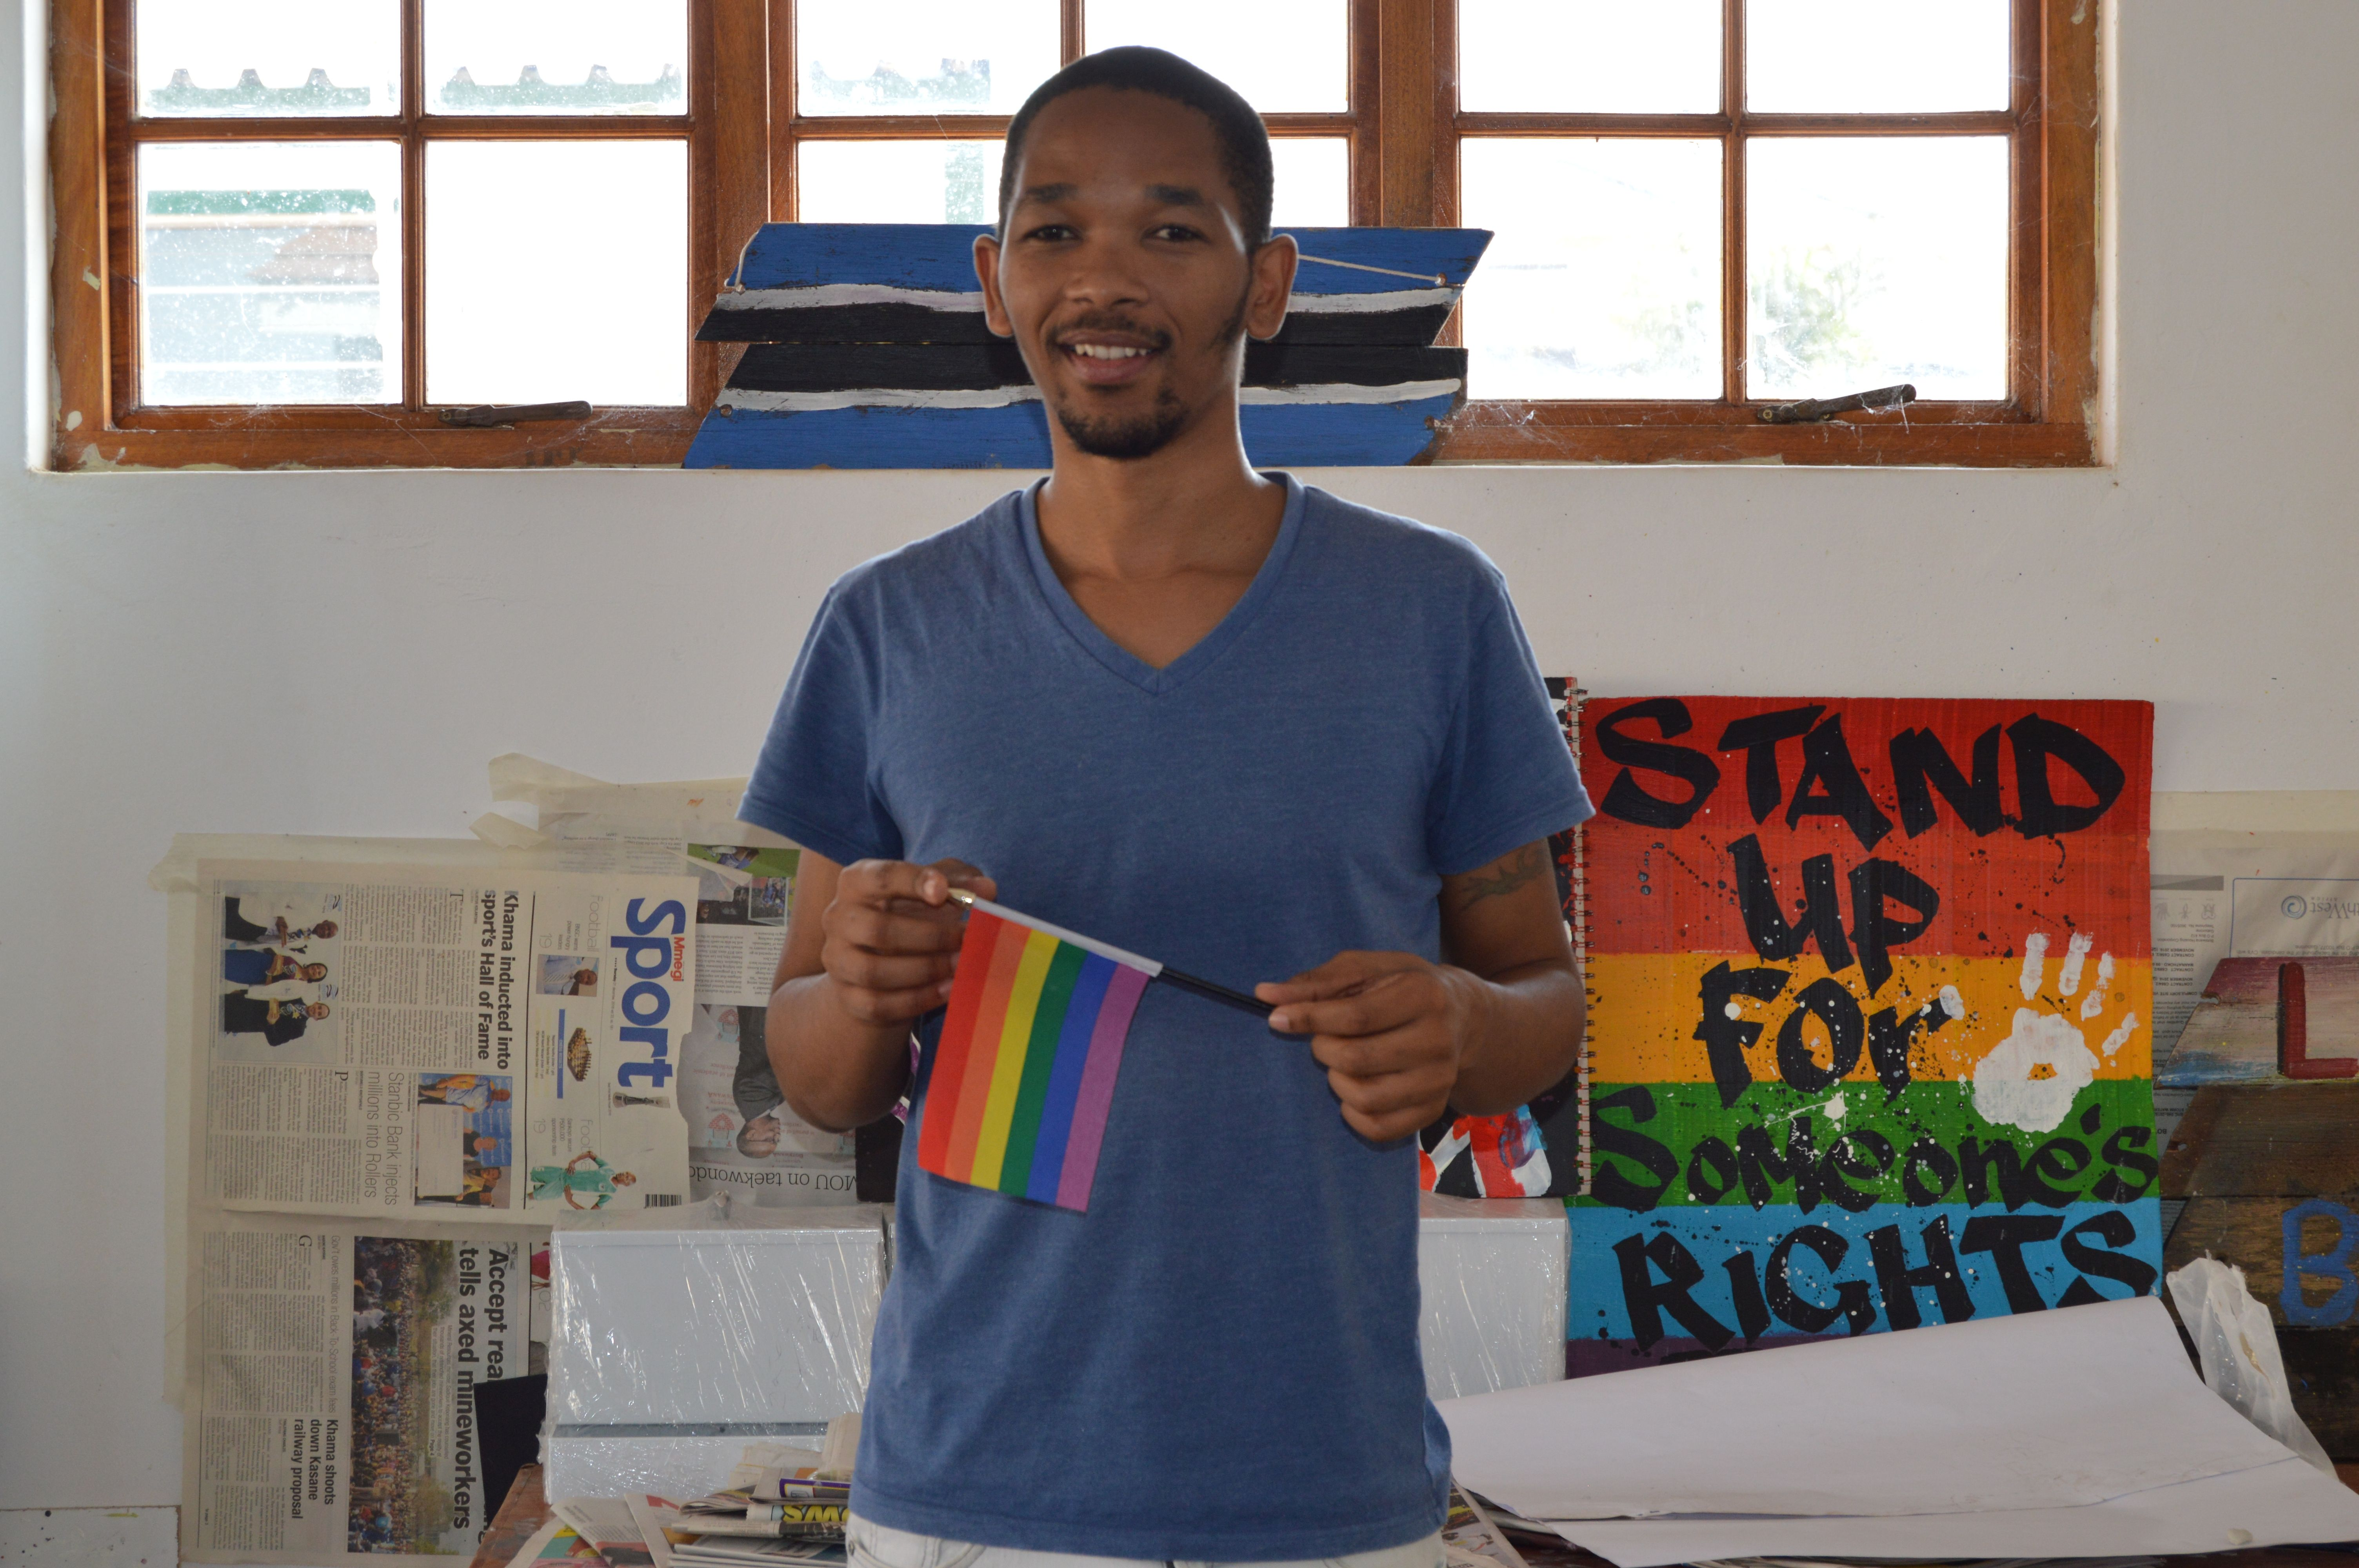 Gay Activists Recruit Kids to Fight Homophobia in Schools by Giving Away OK4U2BGAY' T-Shirts to Teens